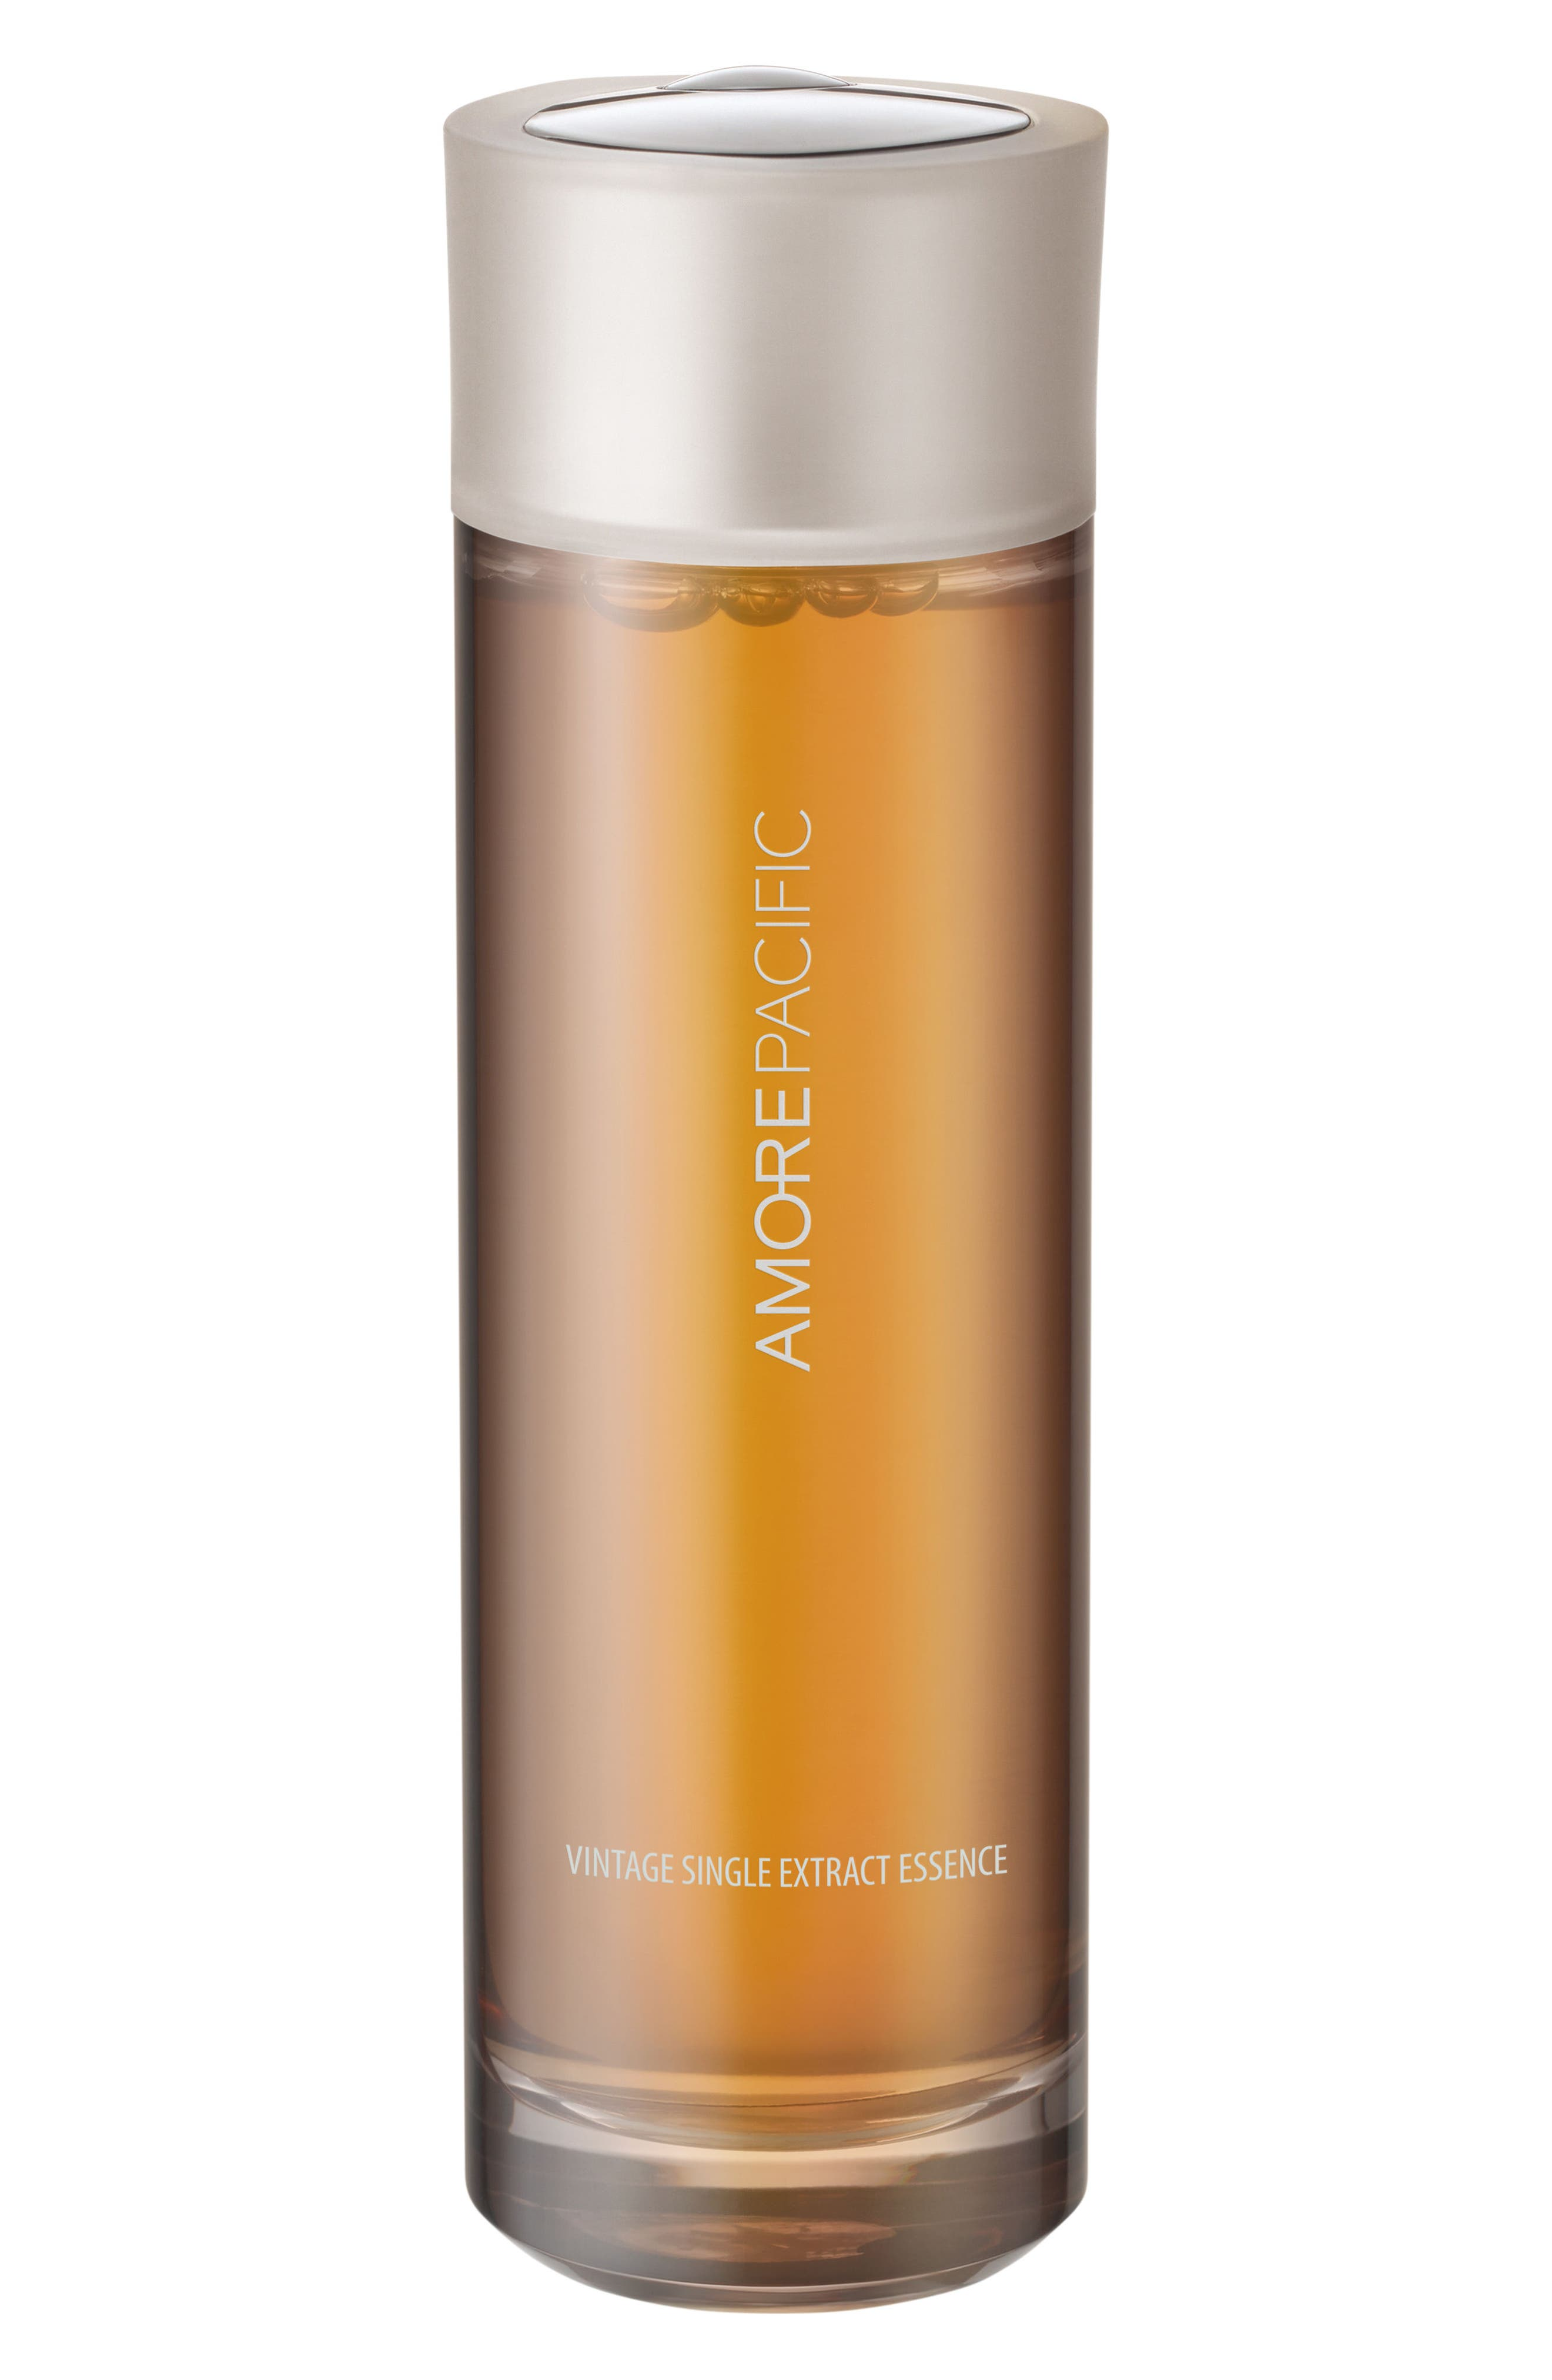 AMOREPACIFIC Vintage Single Extract Essence (Nordstrom Exclusive)